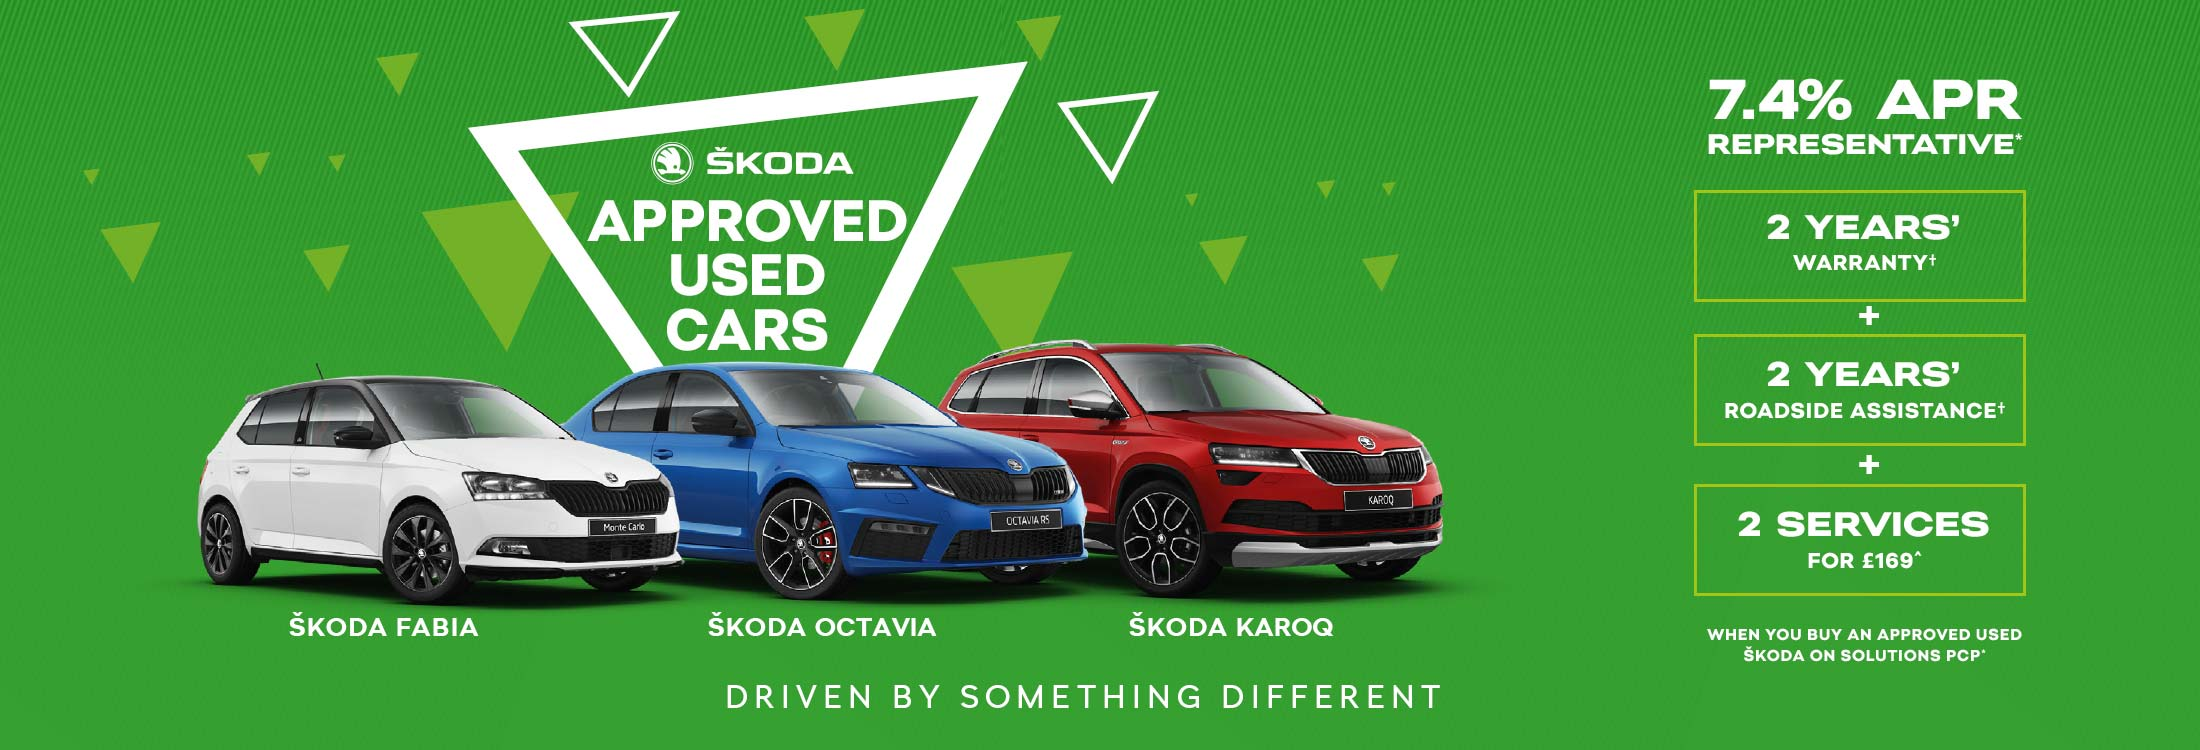 skoda-approved-used-cars